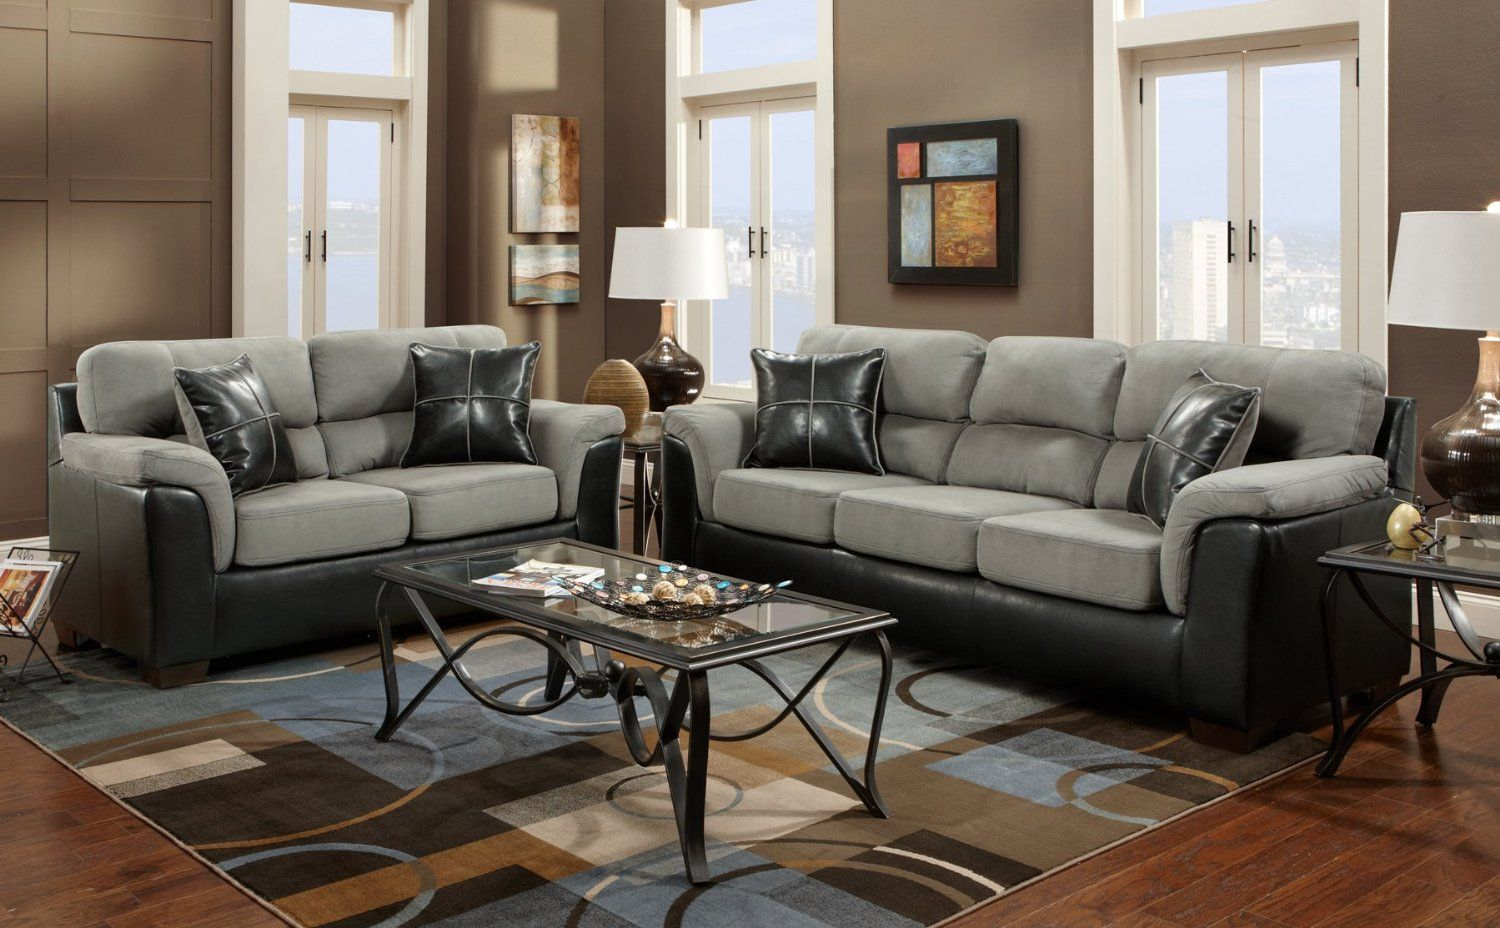 Living Room Furniture Sets   2 Piece Sofa And Loveseat Set. Visit Us For  More Information And Where To Buy! | Home Decor And Ideas | Pinterest | Grey  Walls, ...